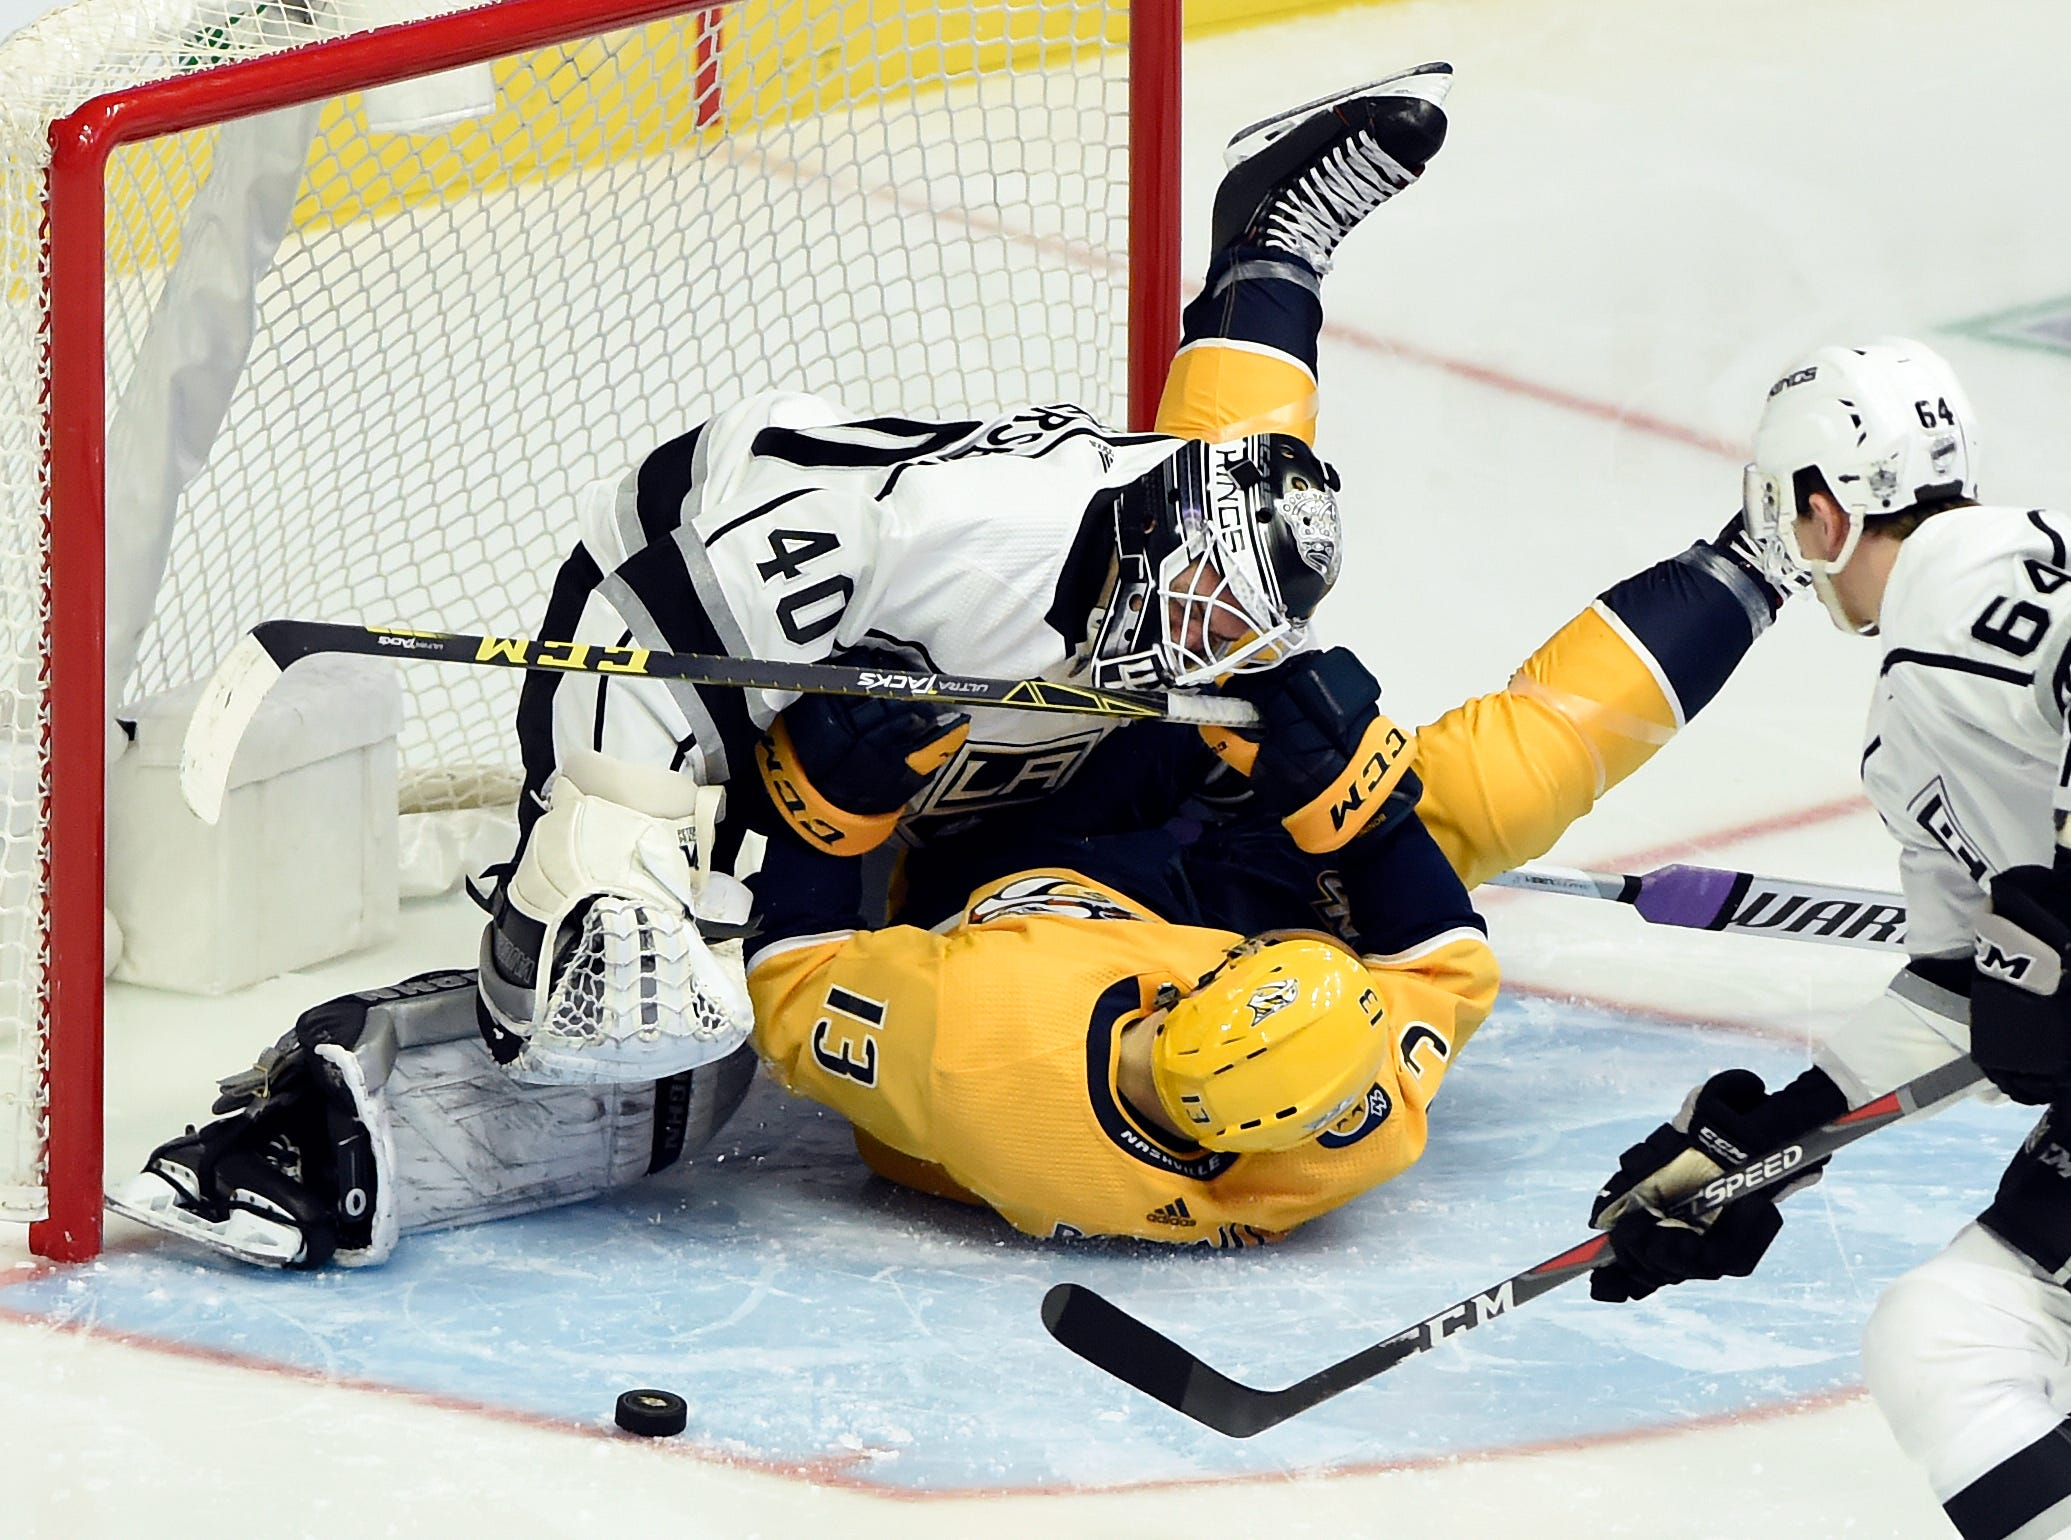 Nashville Predators center Nick Bonino (13) collides with Los Angeles Kings goaltender Calvin Petersen (40) after Bonino attempted a shot during the second period of an NHL hockey game Saturday, Nov. 17, 2018, in Nashville, Tenn.